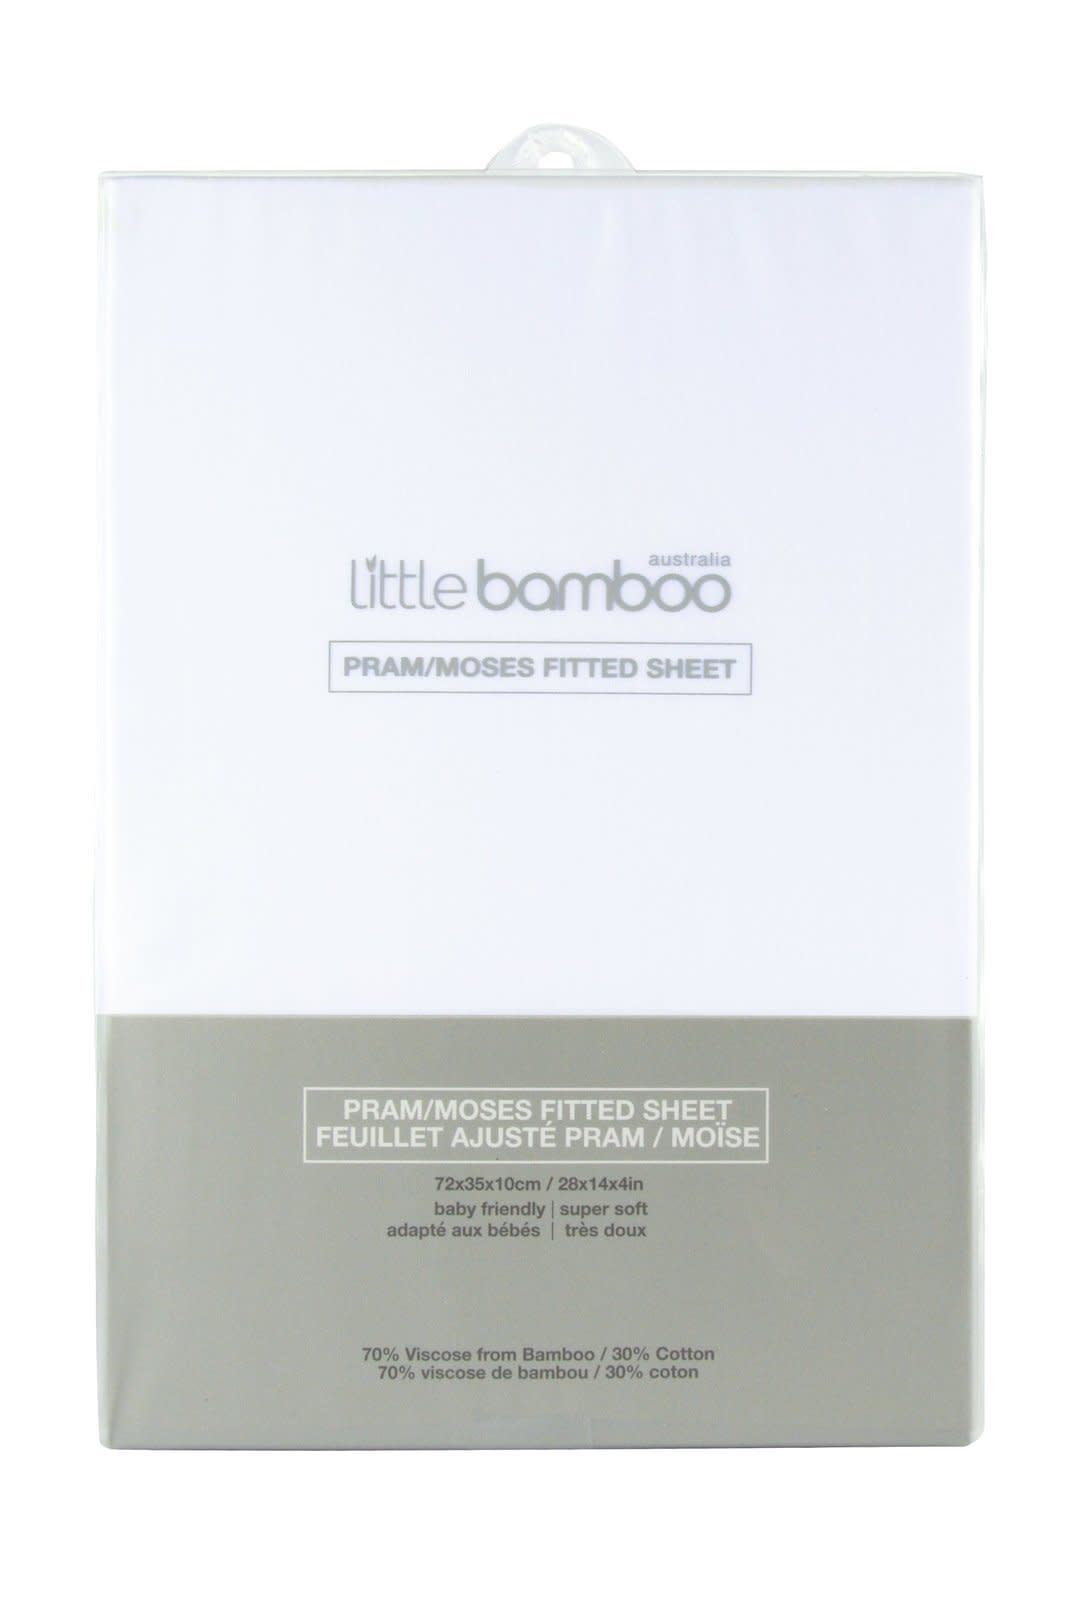 Little Bamboo Little Bamboo Pram Moses Fitted Sheets - 72x35x10cm